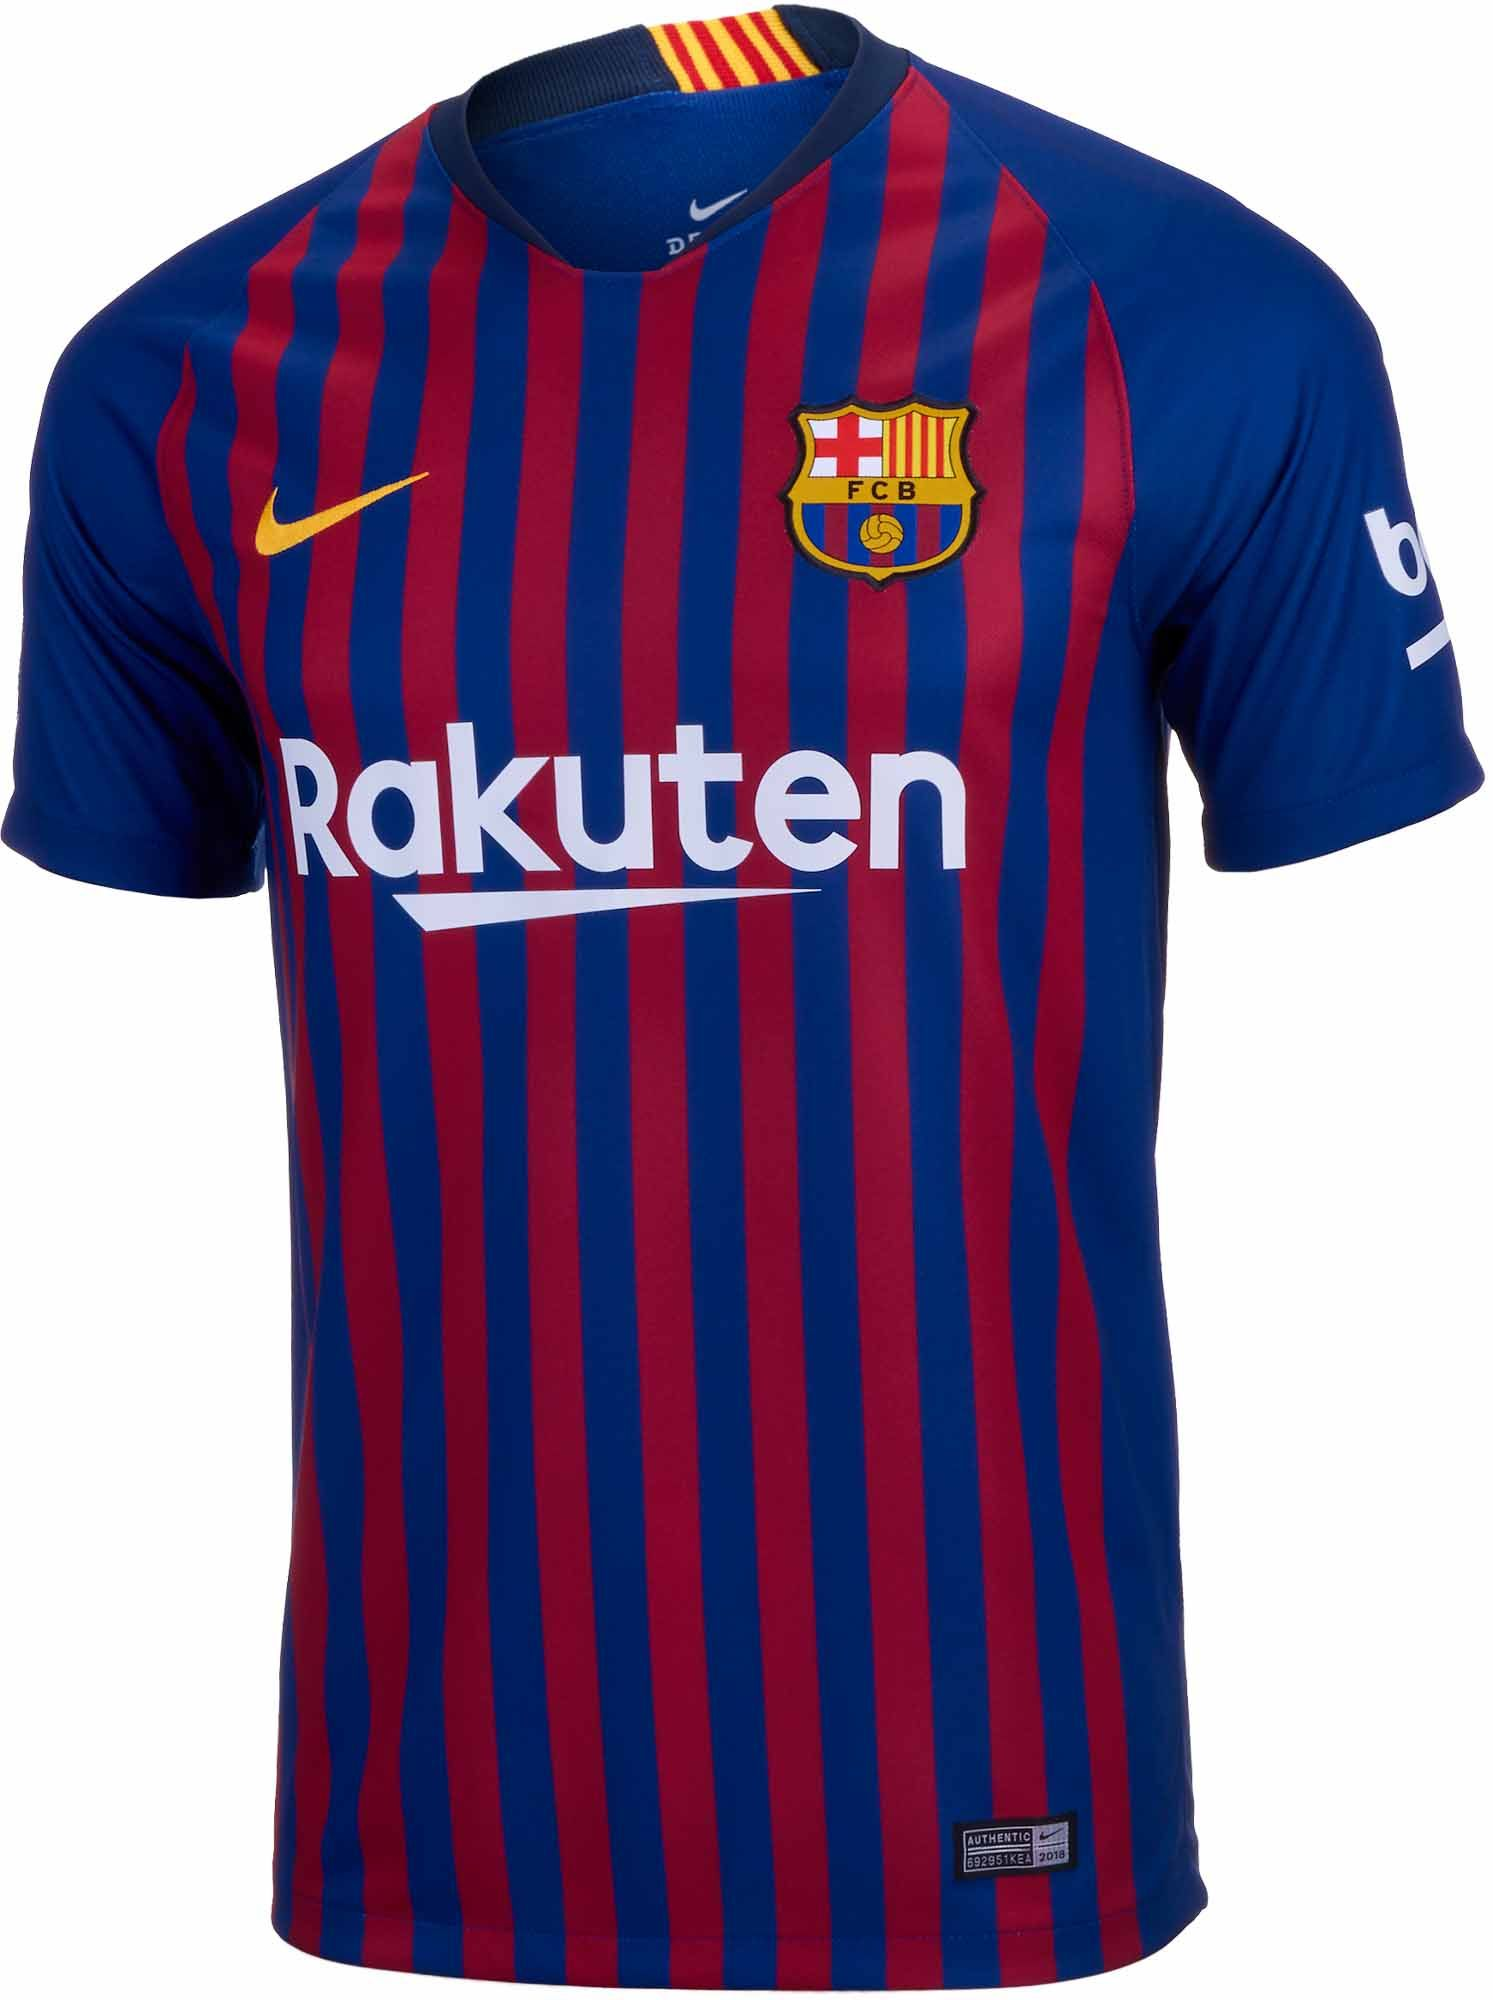 Buy this 2018 19 Kids FC Barcelona Home Jersey from www.soccerpro.com 0dbc791809e88